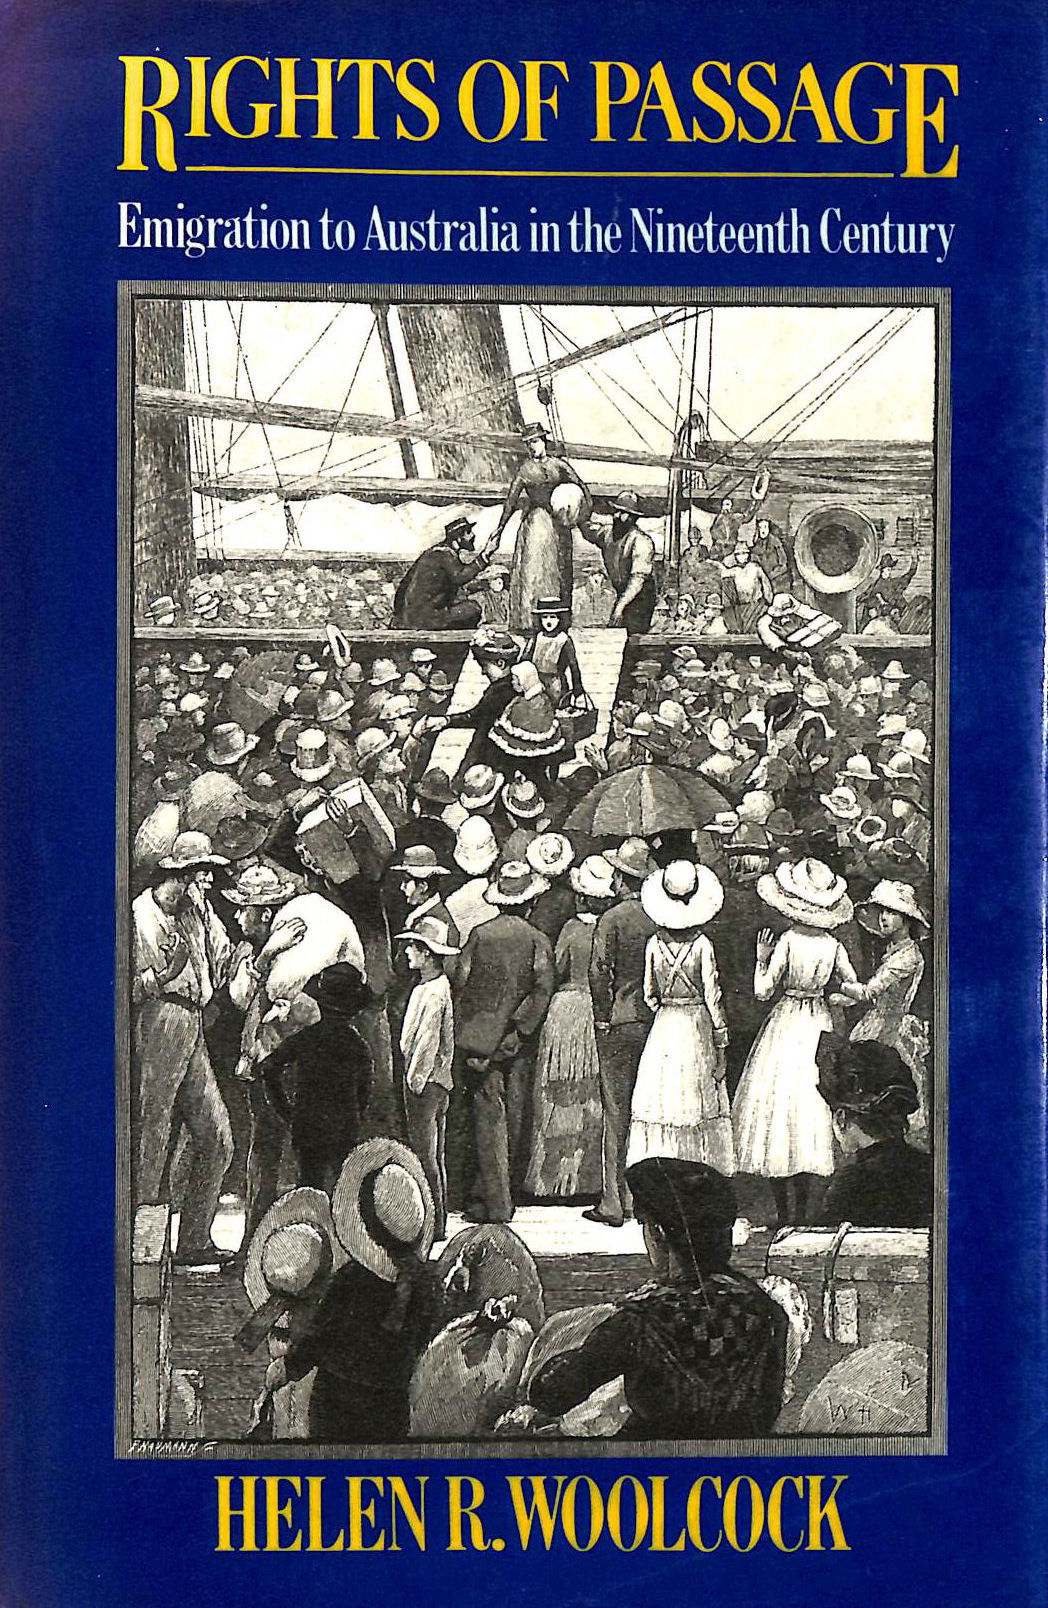 Image for Rights of Passage: Emigrant Voyages to Australia in the Nineteenth Century